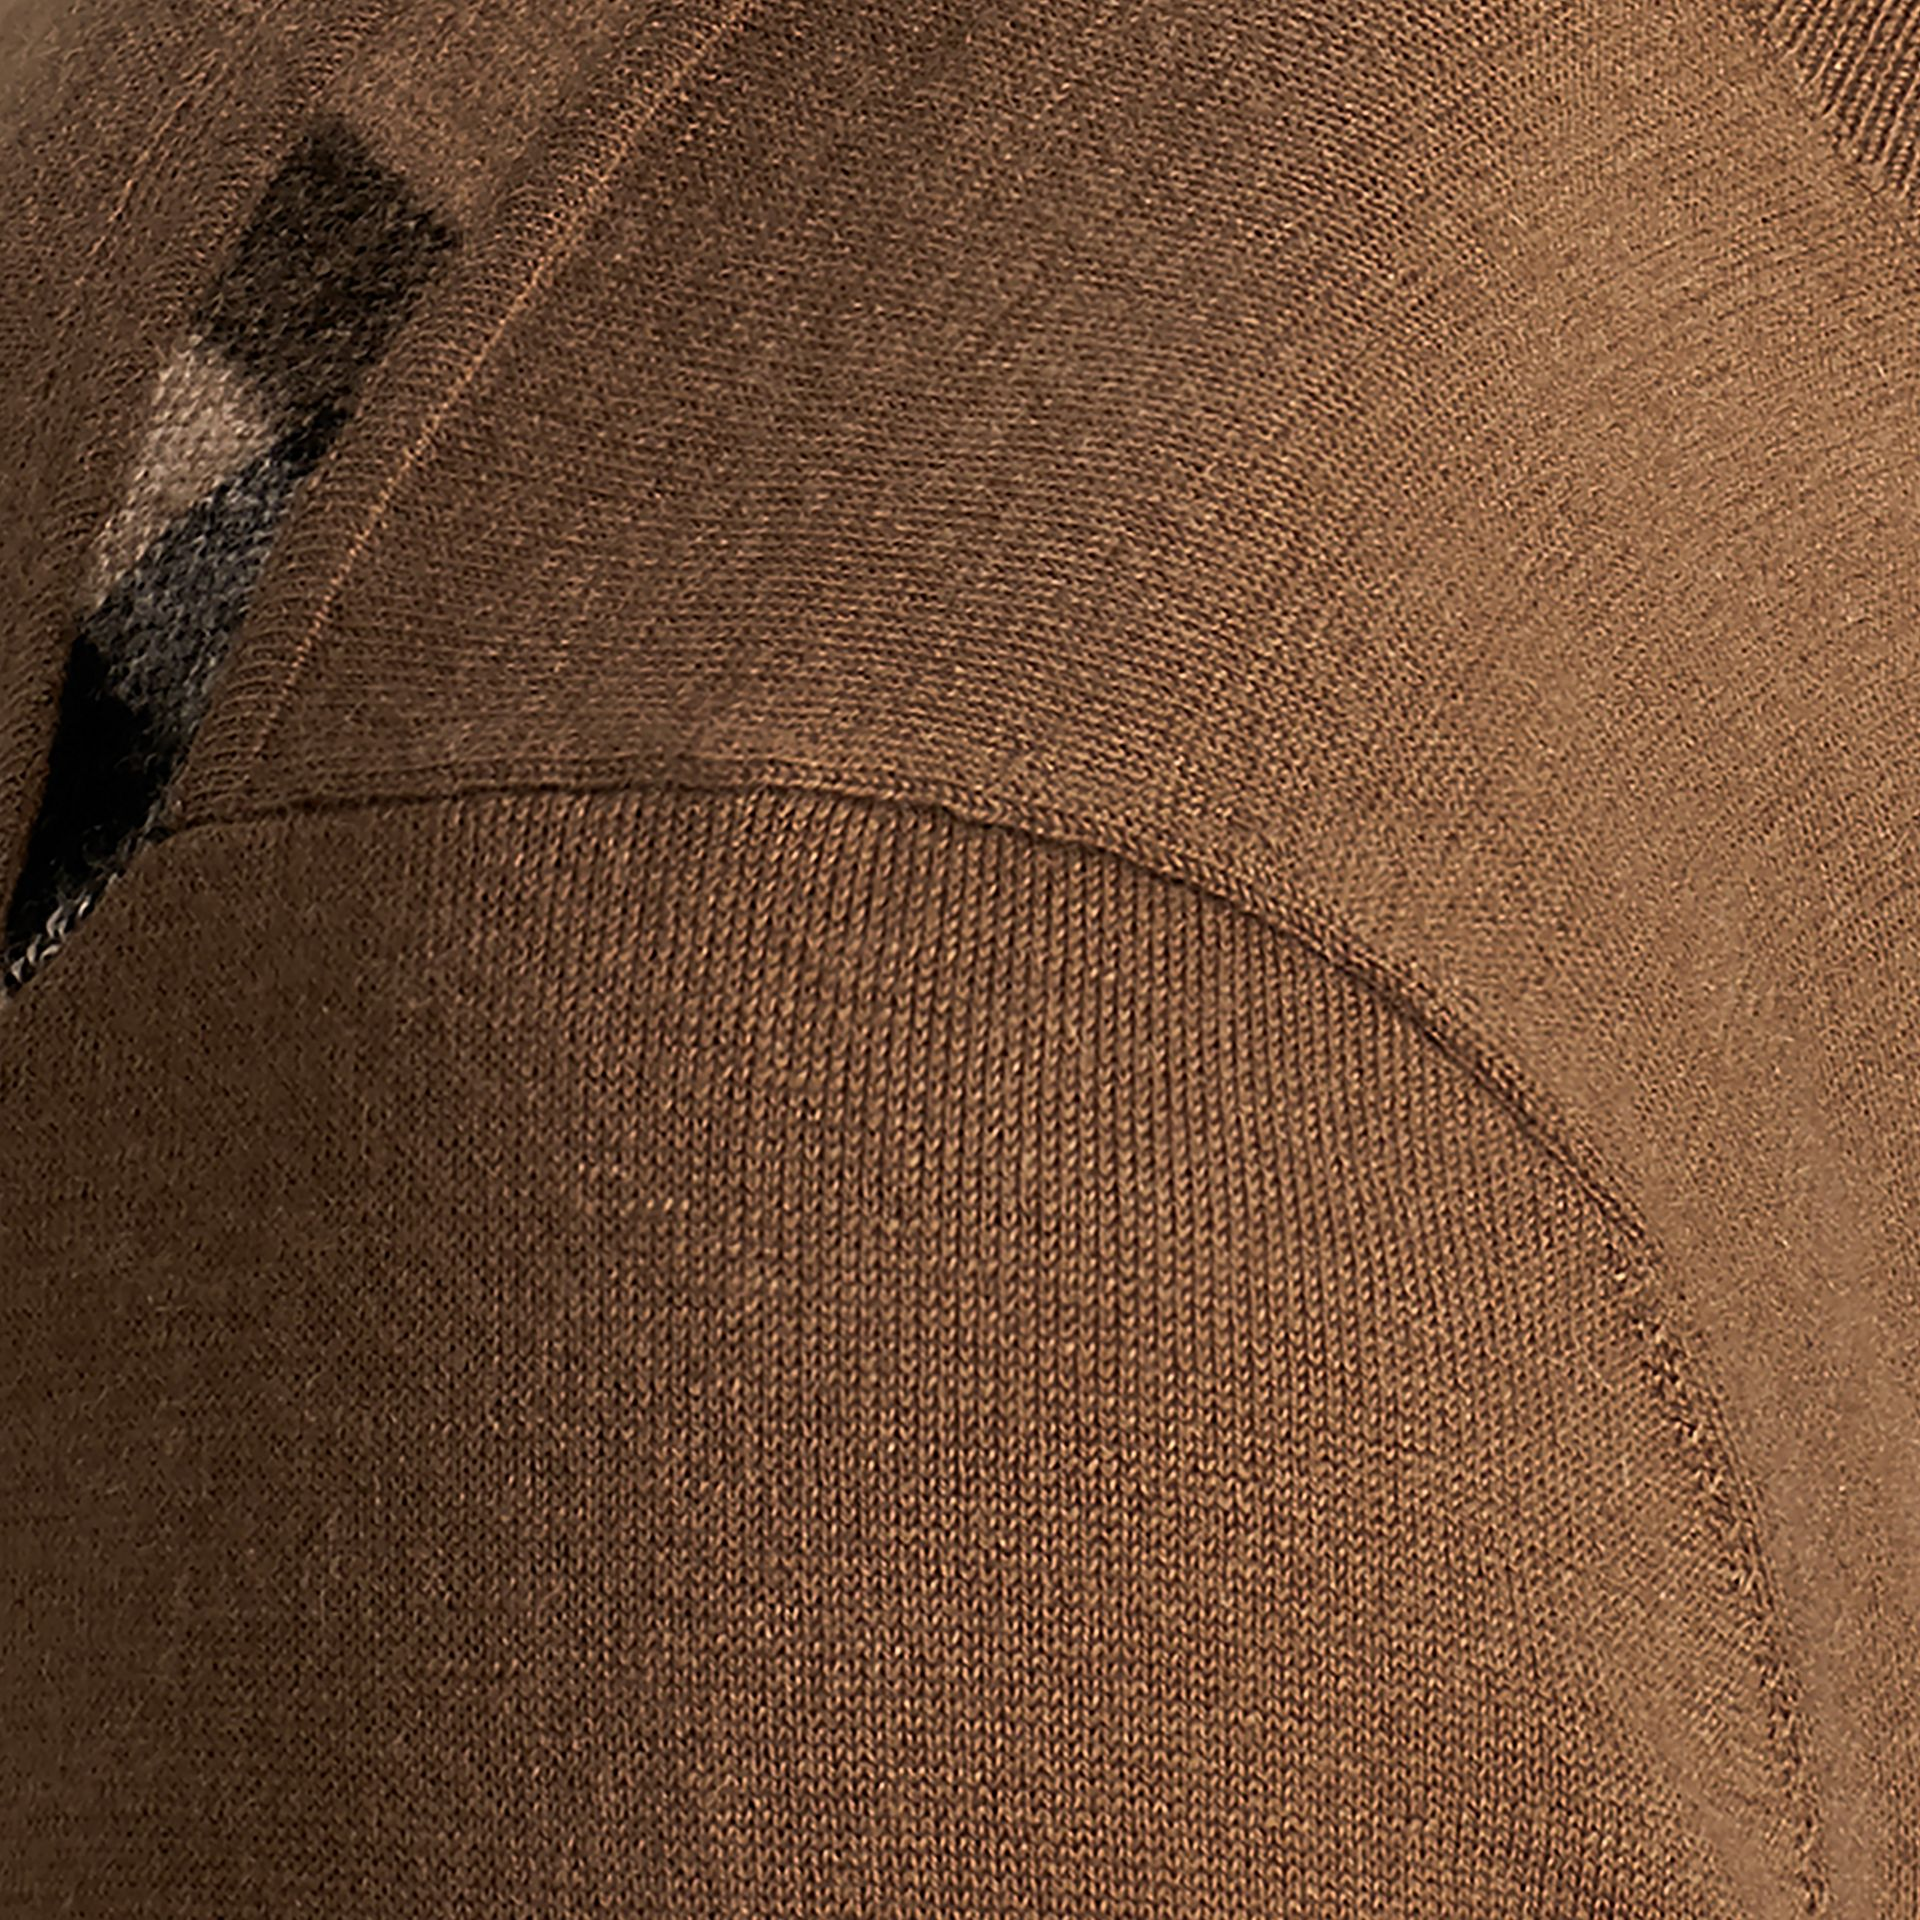 Lightweight Crew Neck Cashmere Sweater with Check Trim Camel - gallery image 2